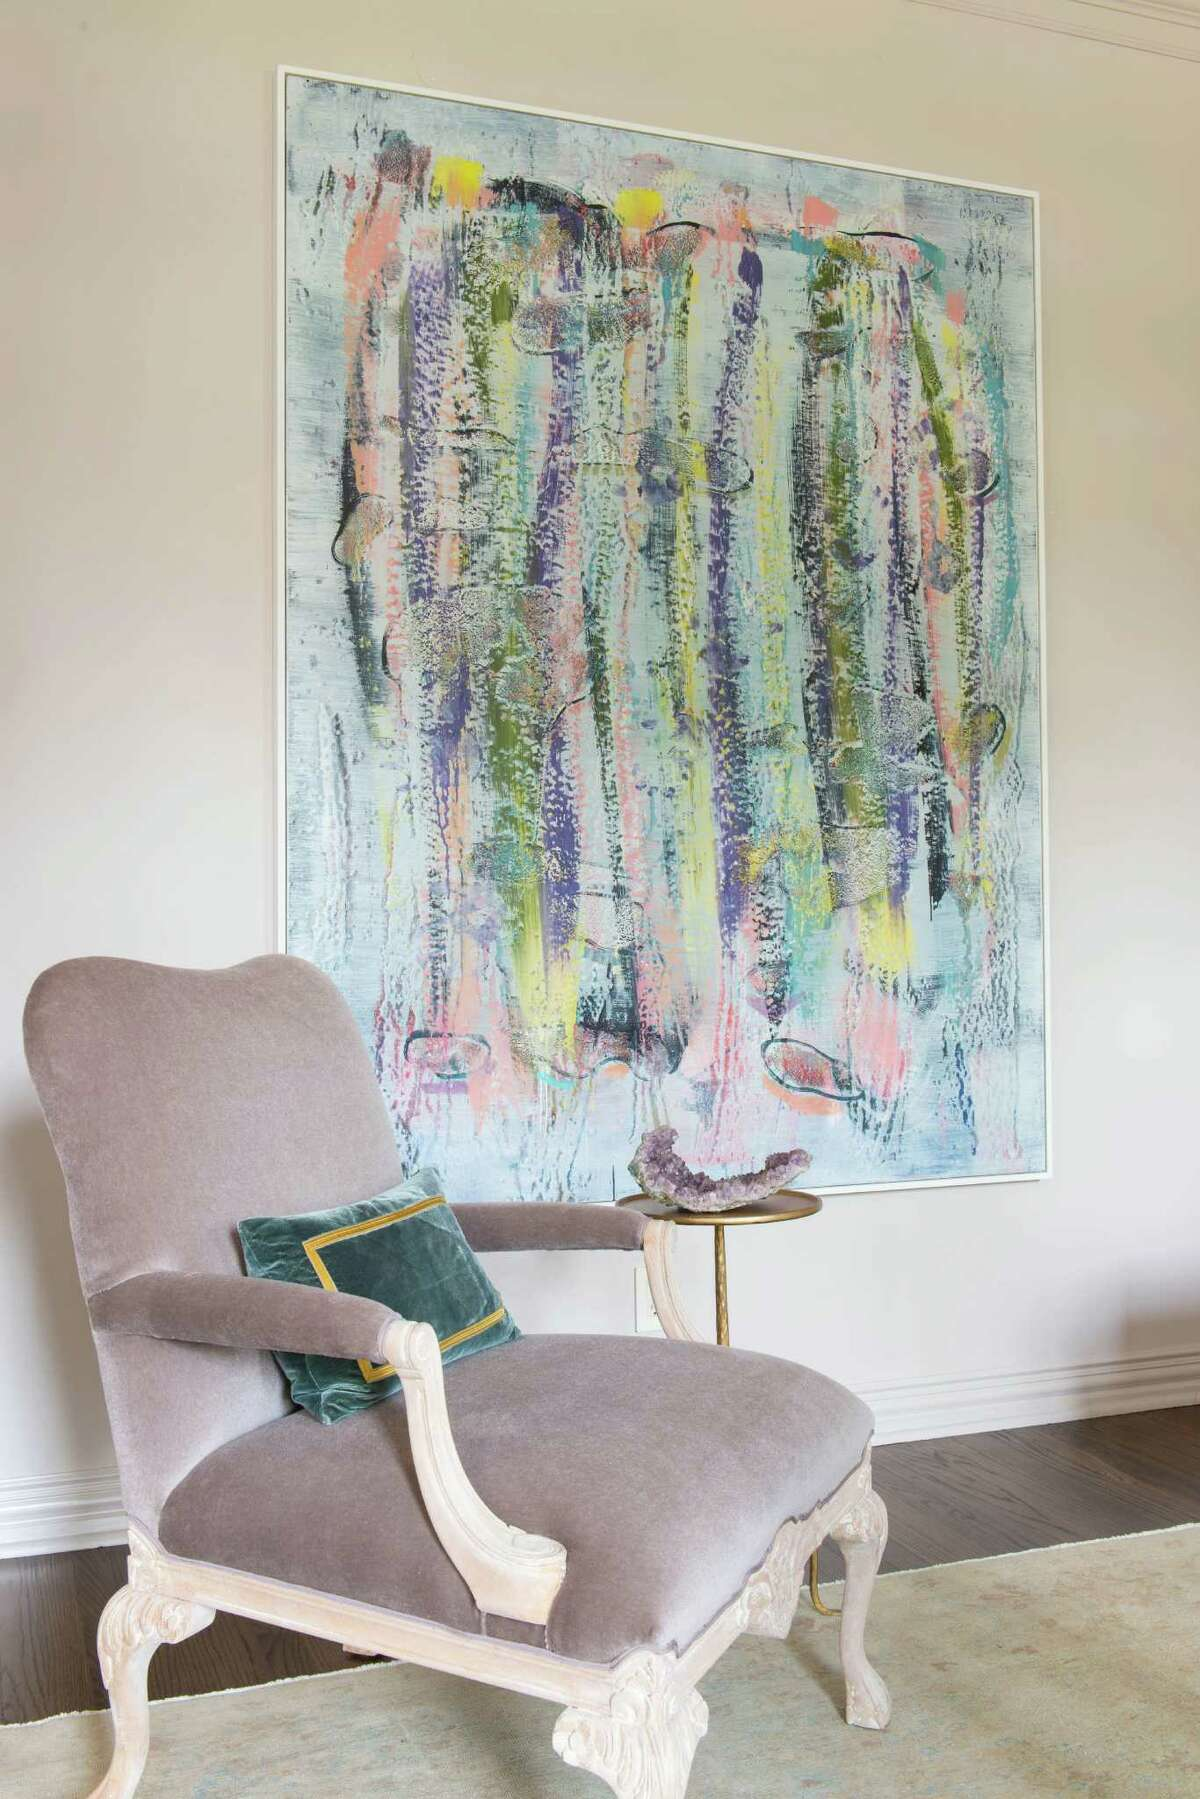 A painting by Jon Pestoni dominates one wall of the formal sitting room, adding a pop of color that coordinates with the room's pale neutrals.